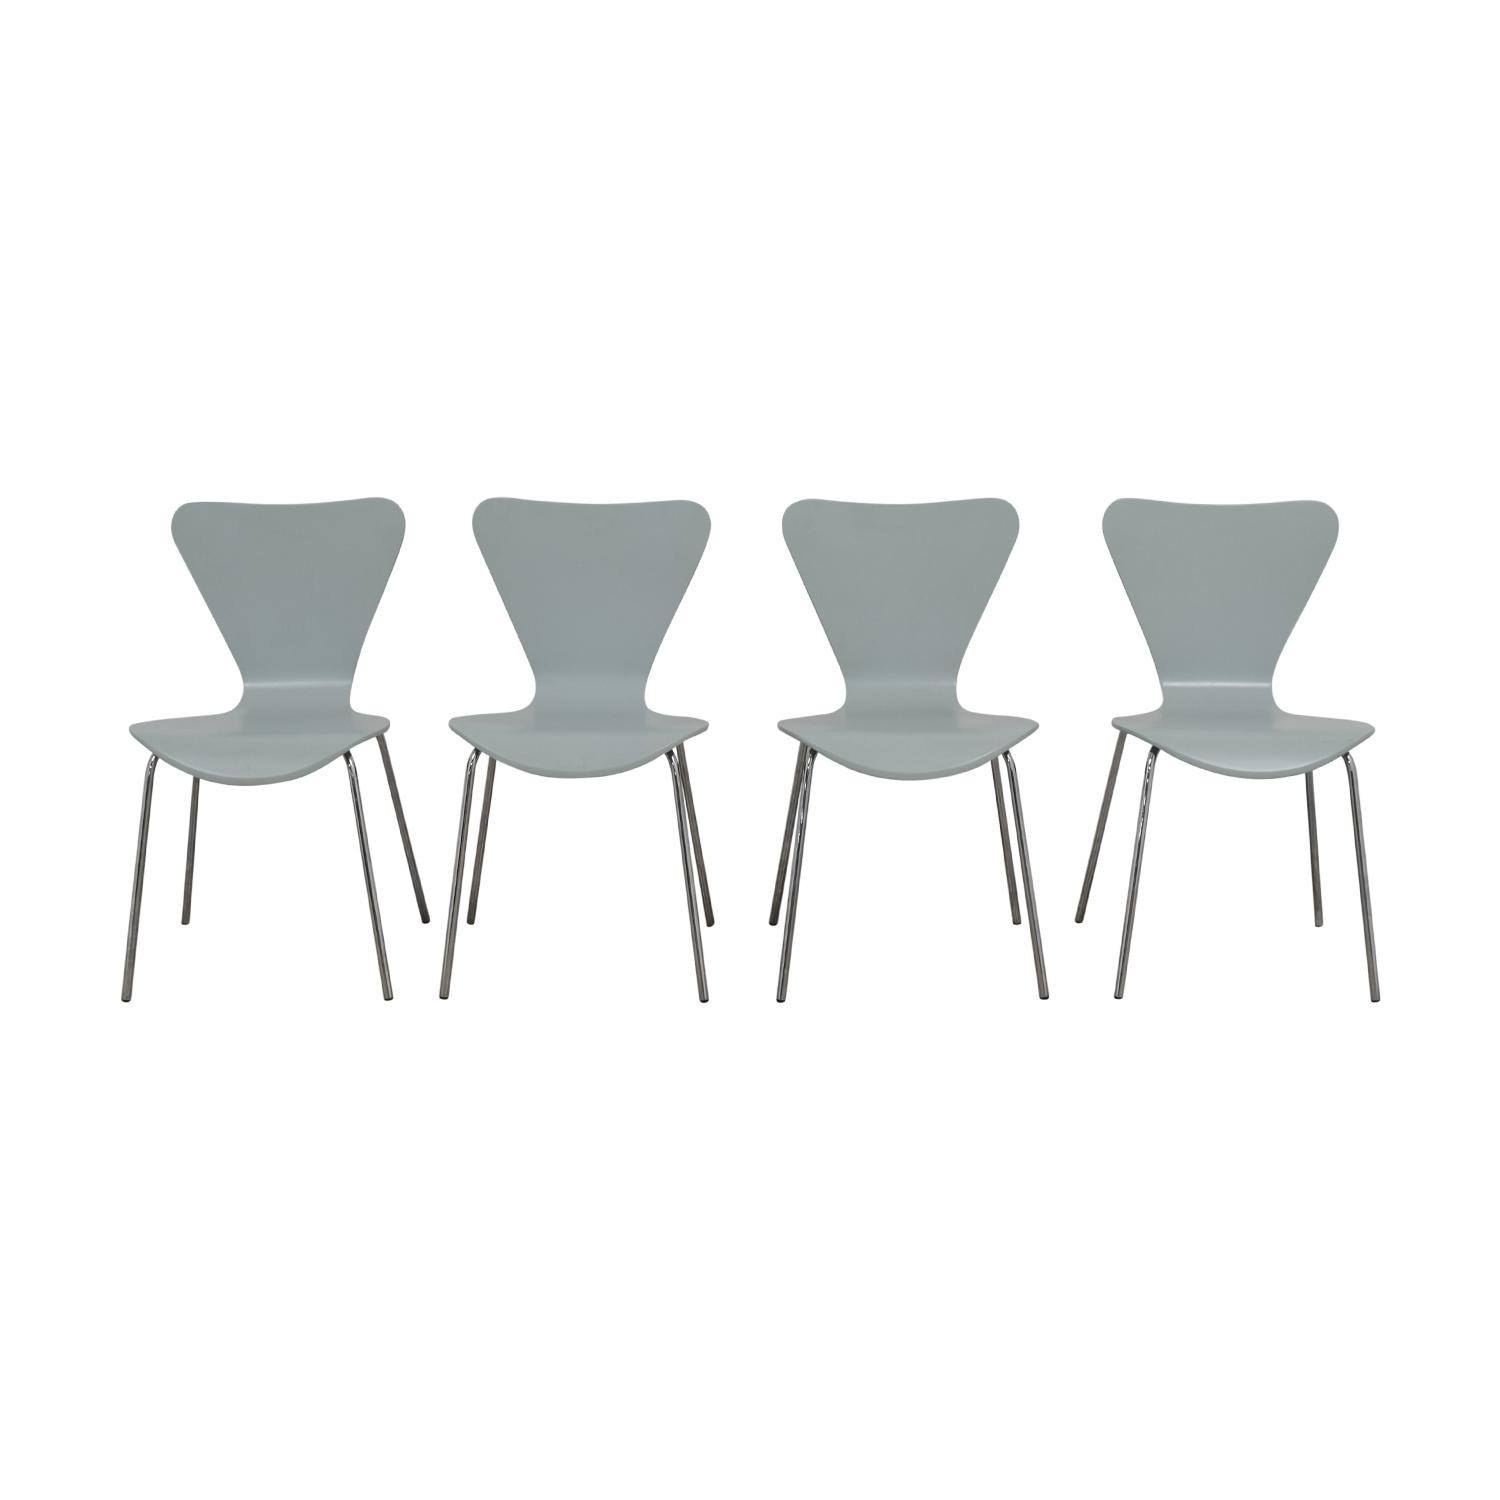 Room & Board Room & Board Jake Light Blue Chairs Dining Chairs